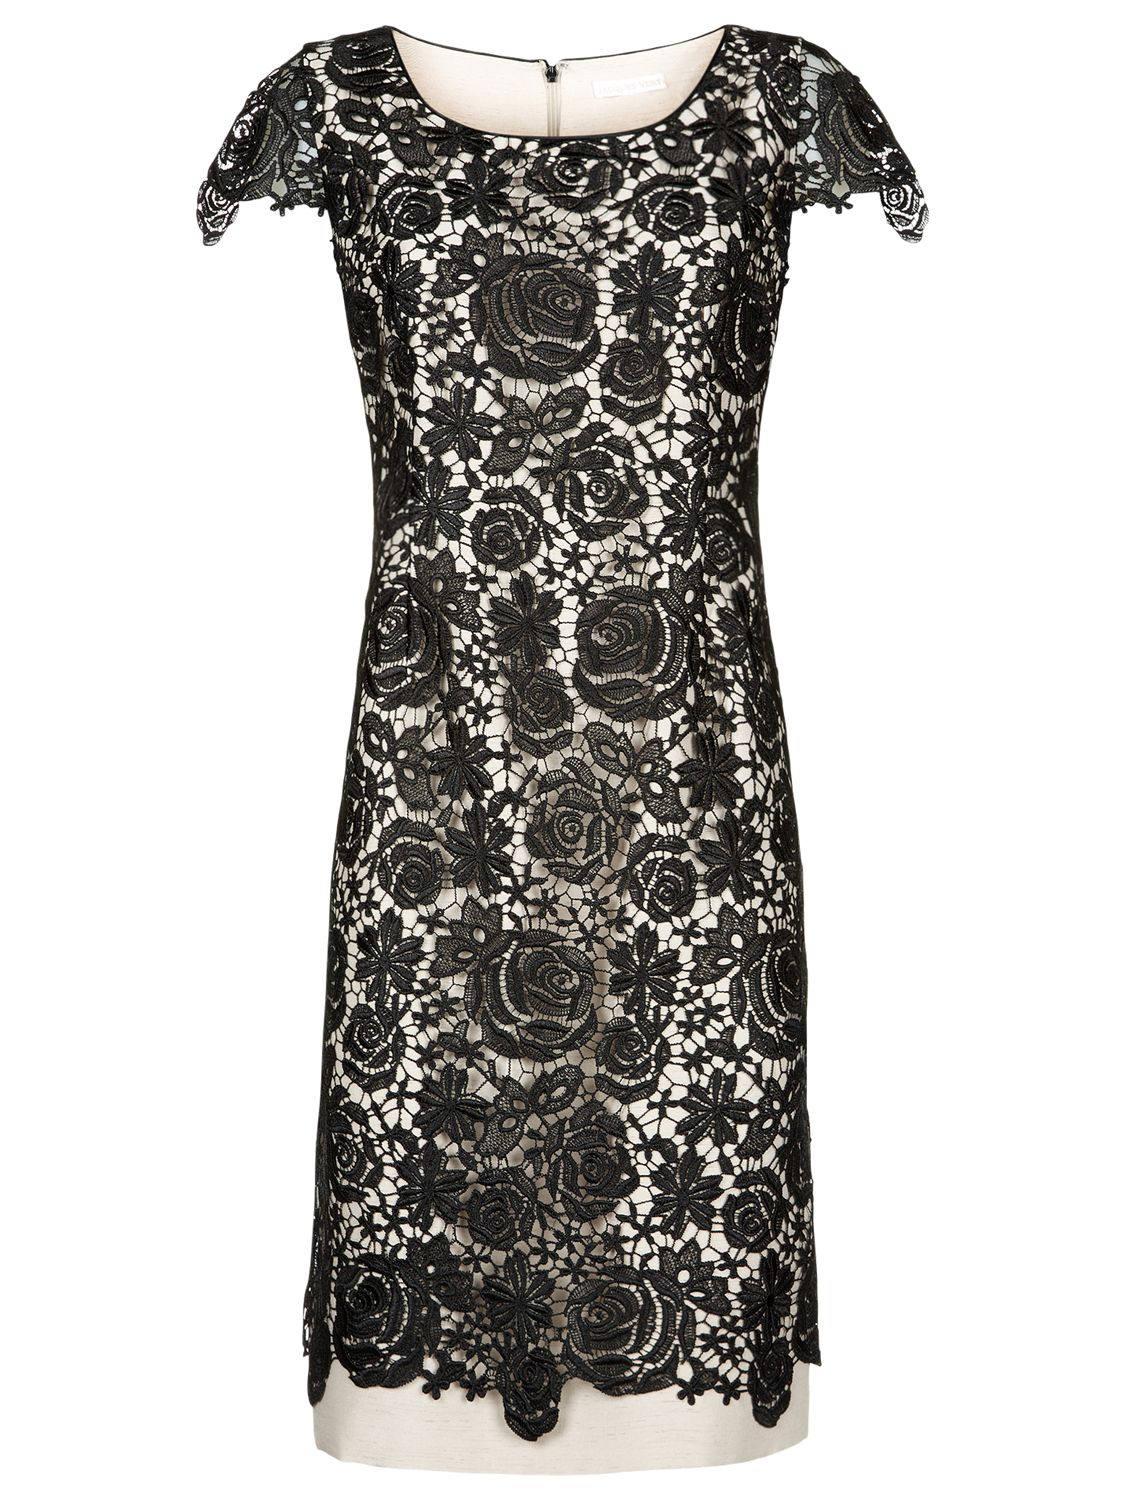 jacques vert lace layer dress black, jacques, vert, lace, layer, dress, black, jacques vert, clearance, womenswear offers, womens dresses offers, special offers, women, plus size, inactive womenswear, new reductions, womens dresses, 1725550